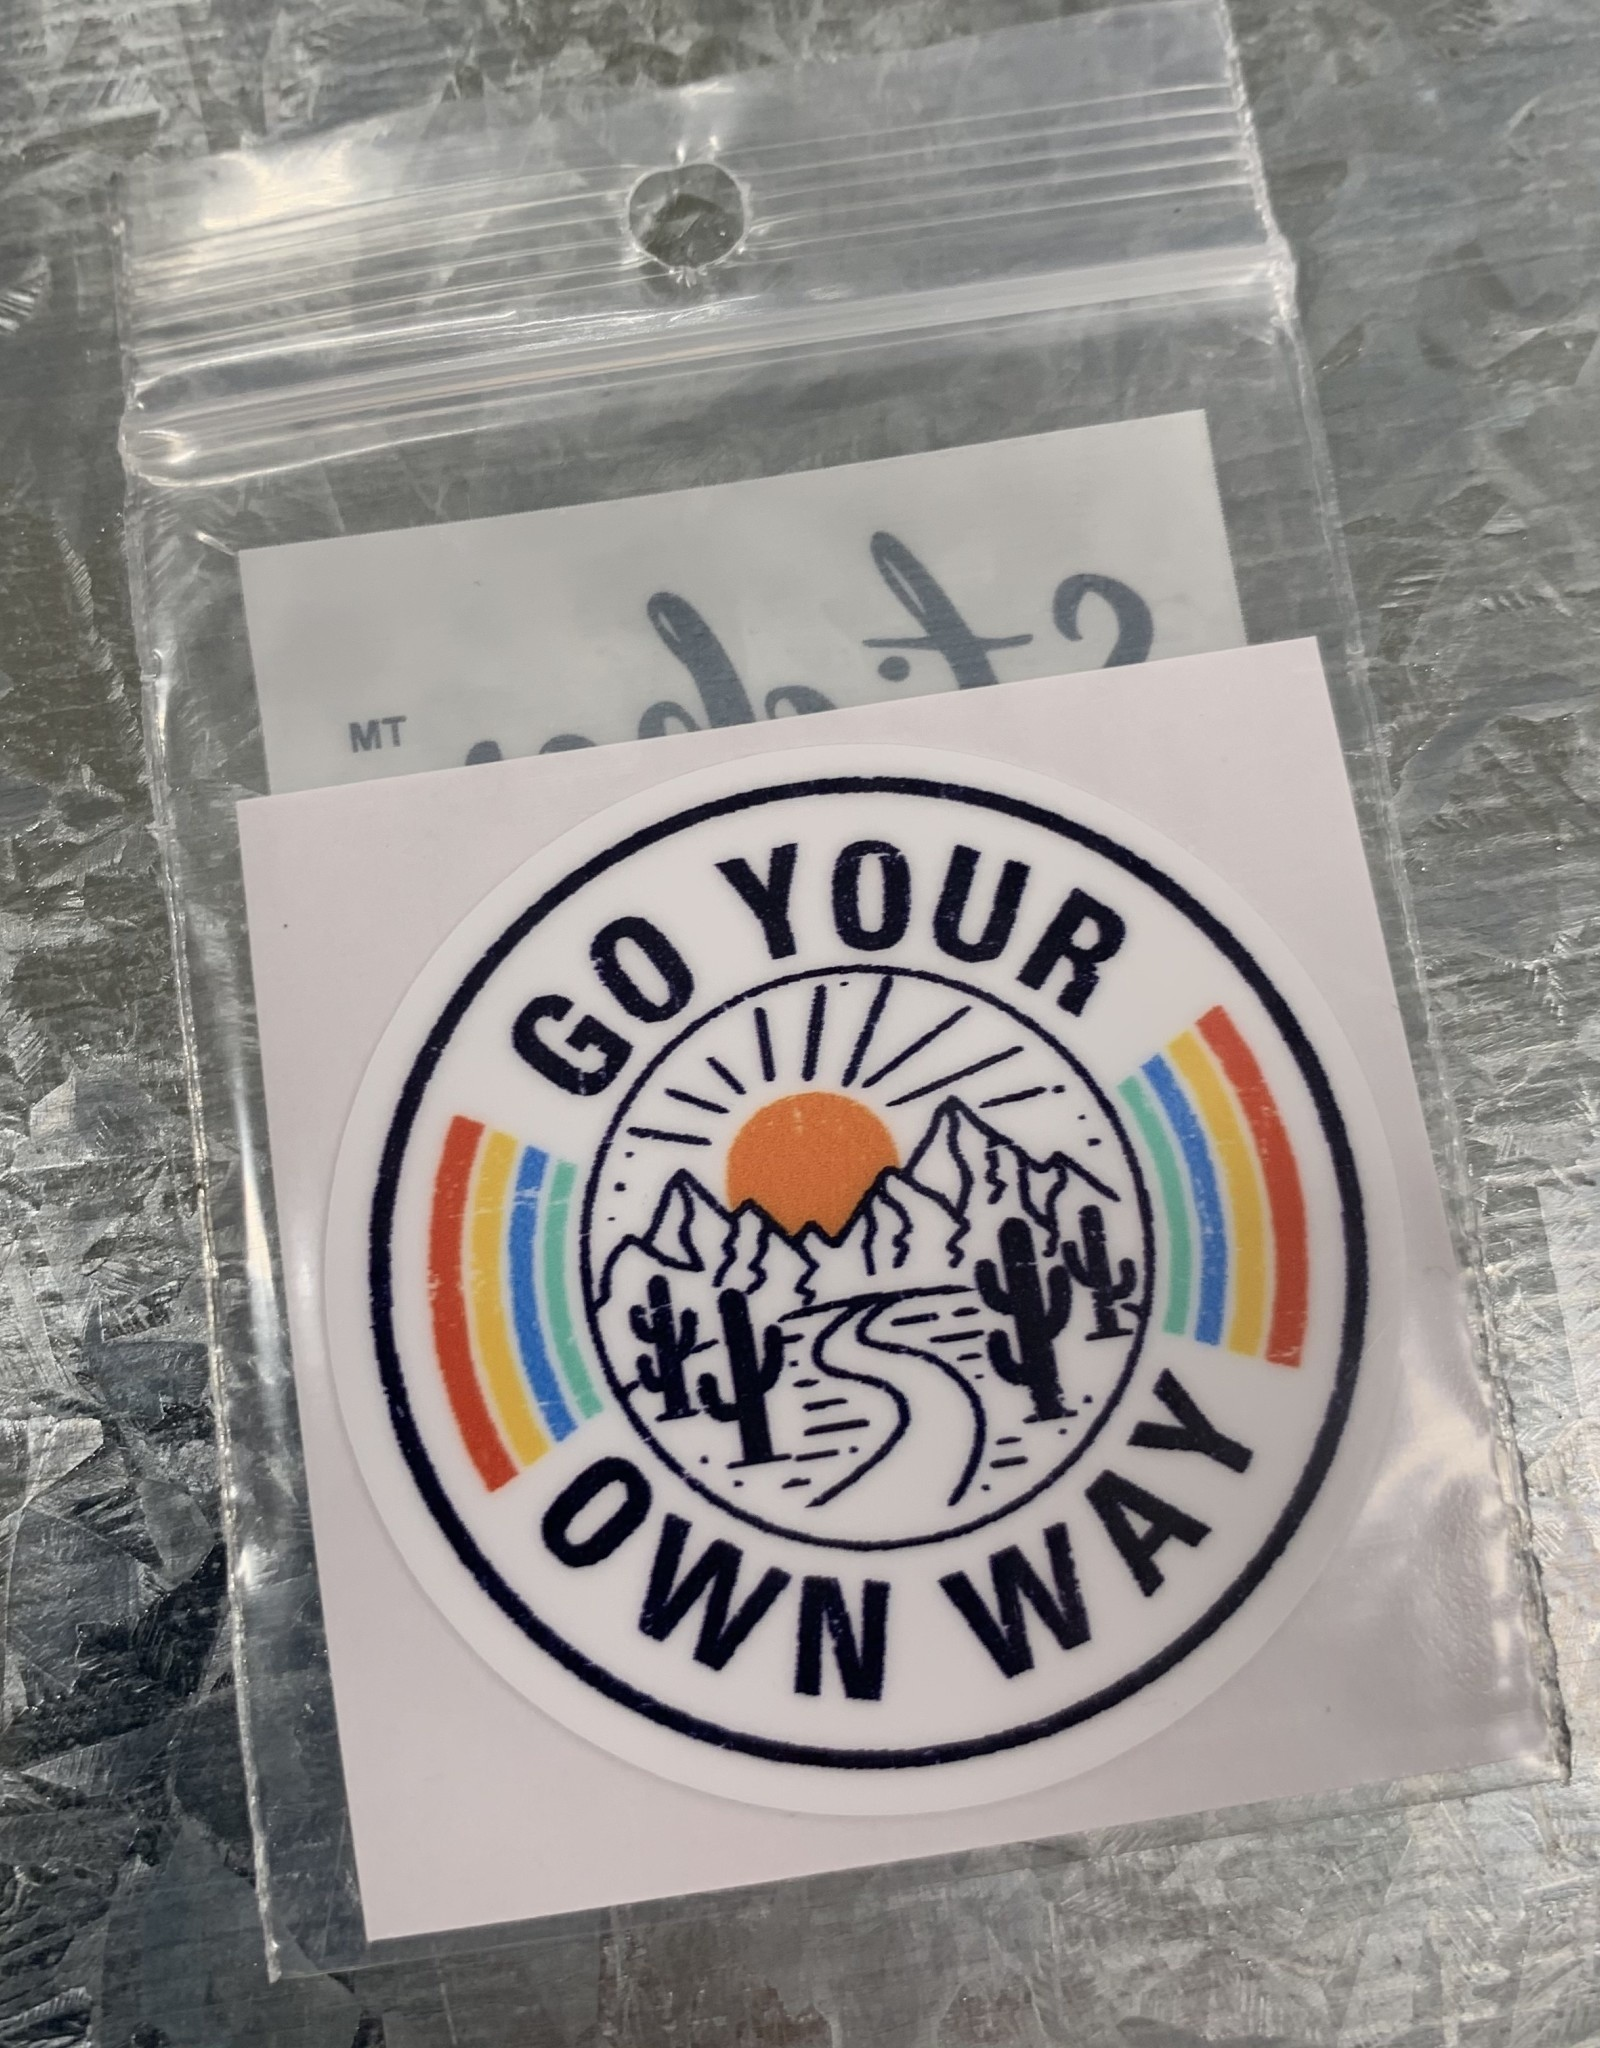 GO YOUR OWN WAY STICKER (CELL)